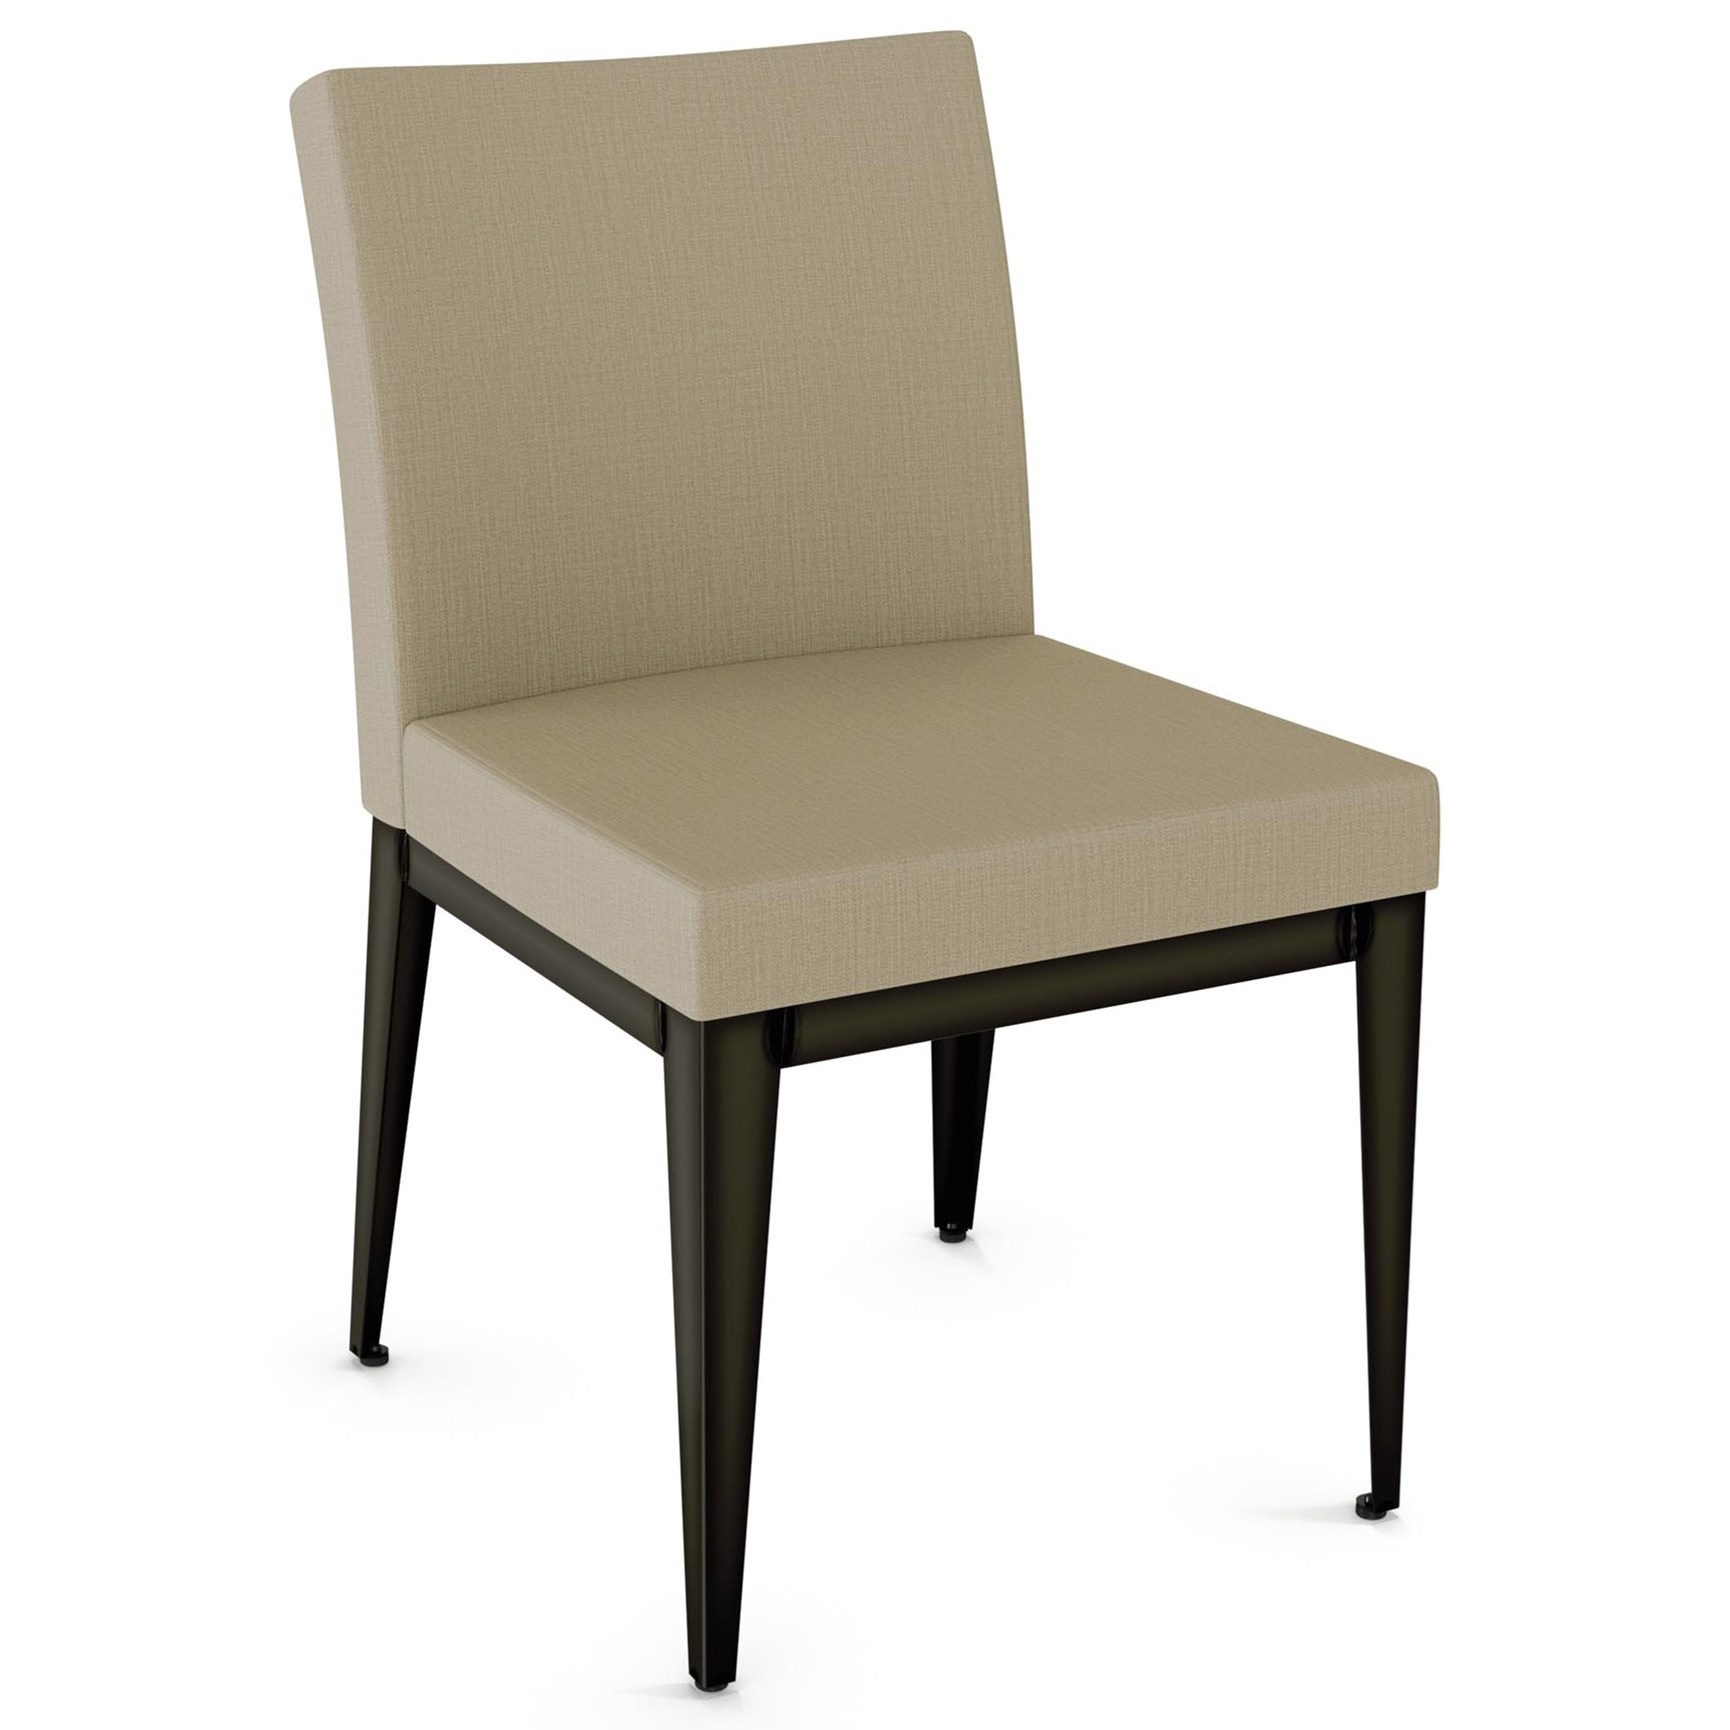 Boudoir Pablo Side Chair by Amisco at Jordan's Home Furnishings